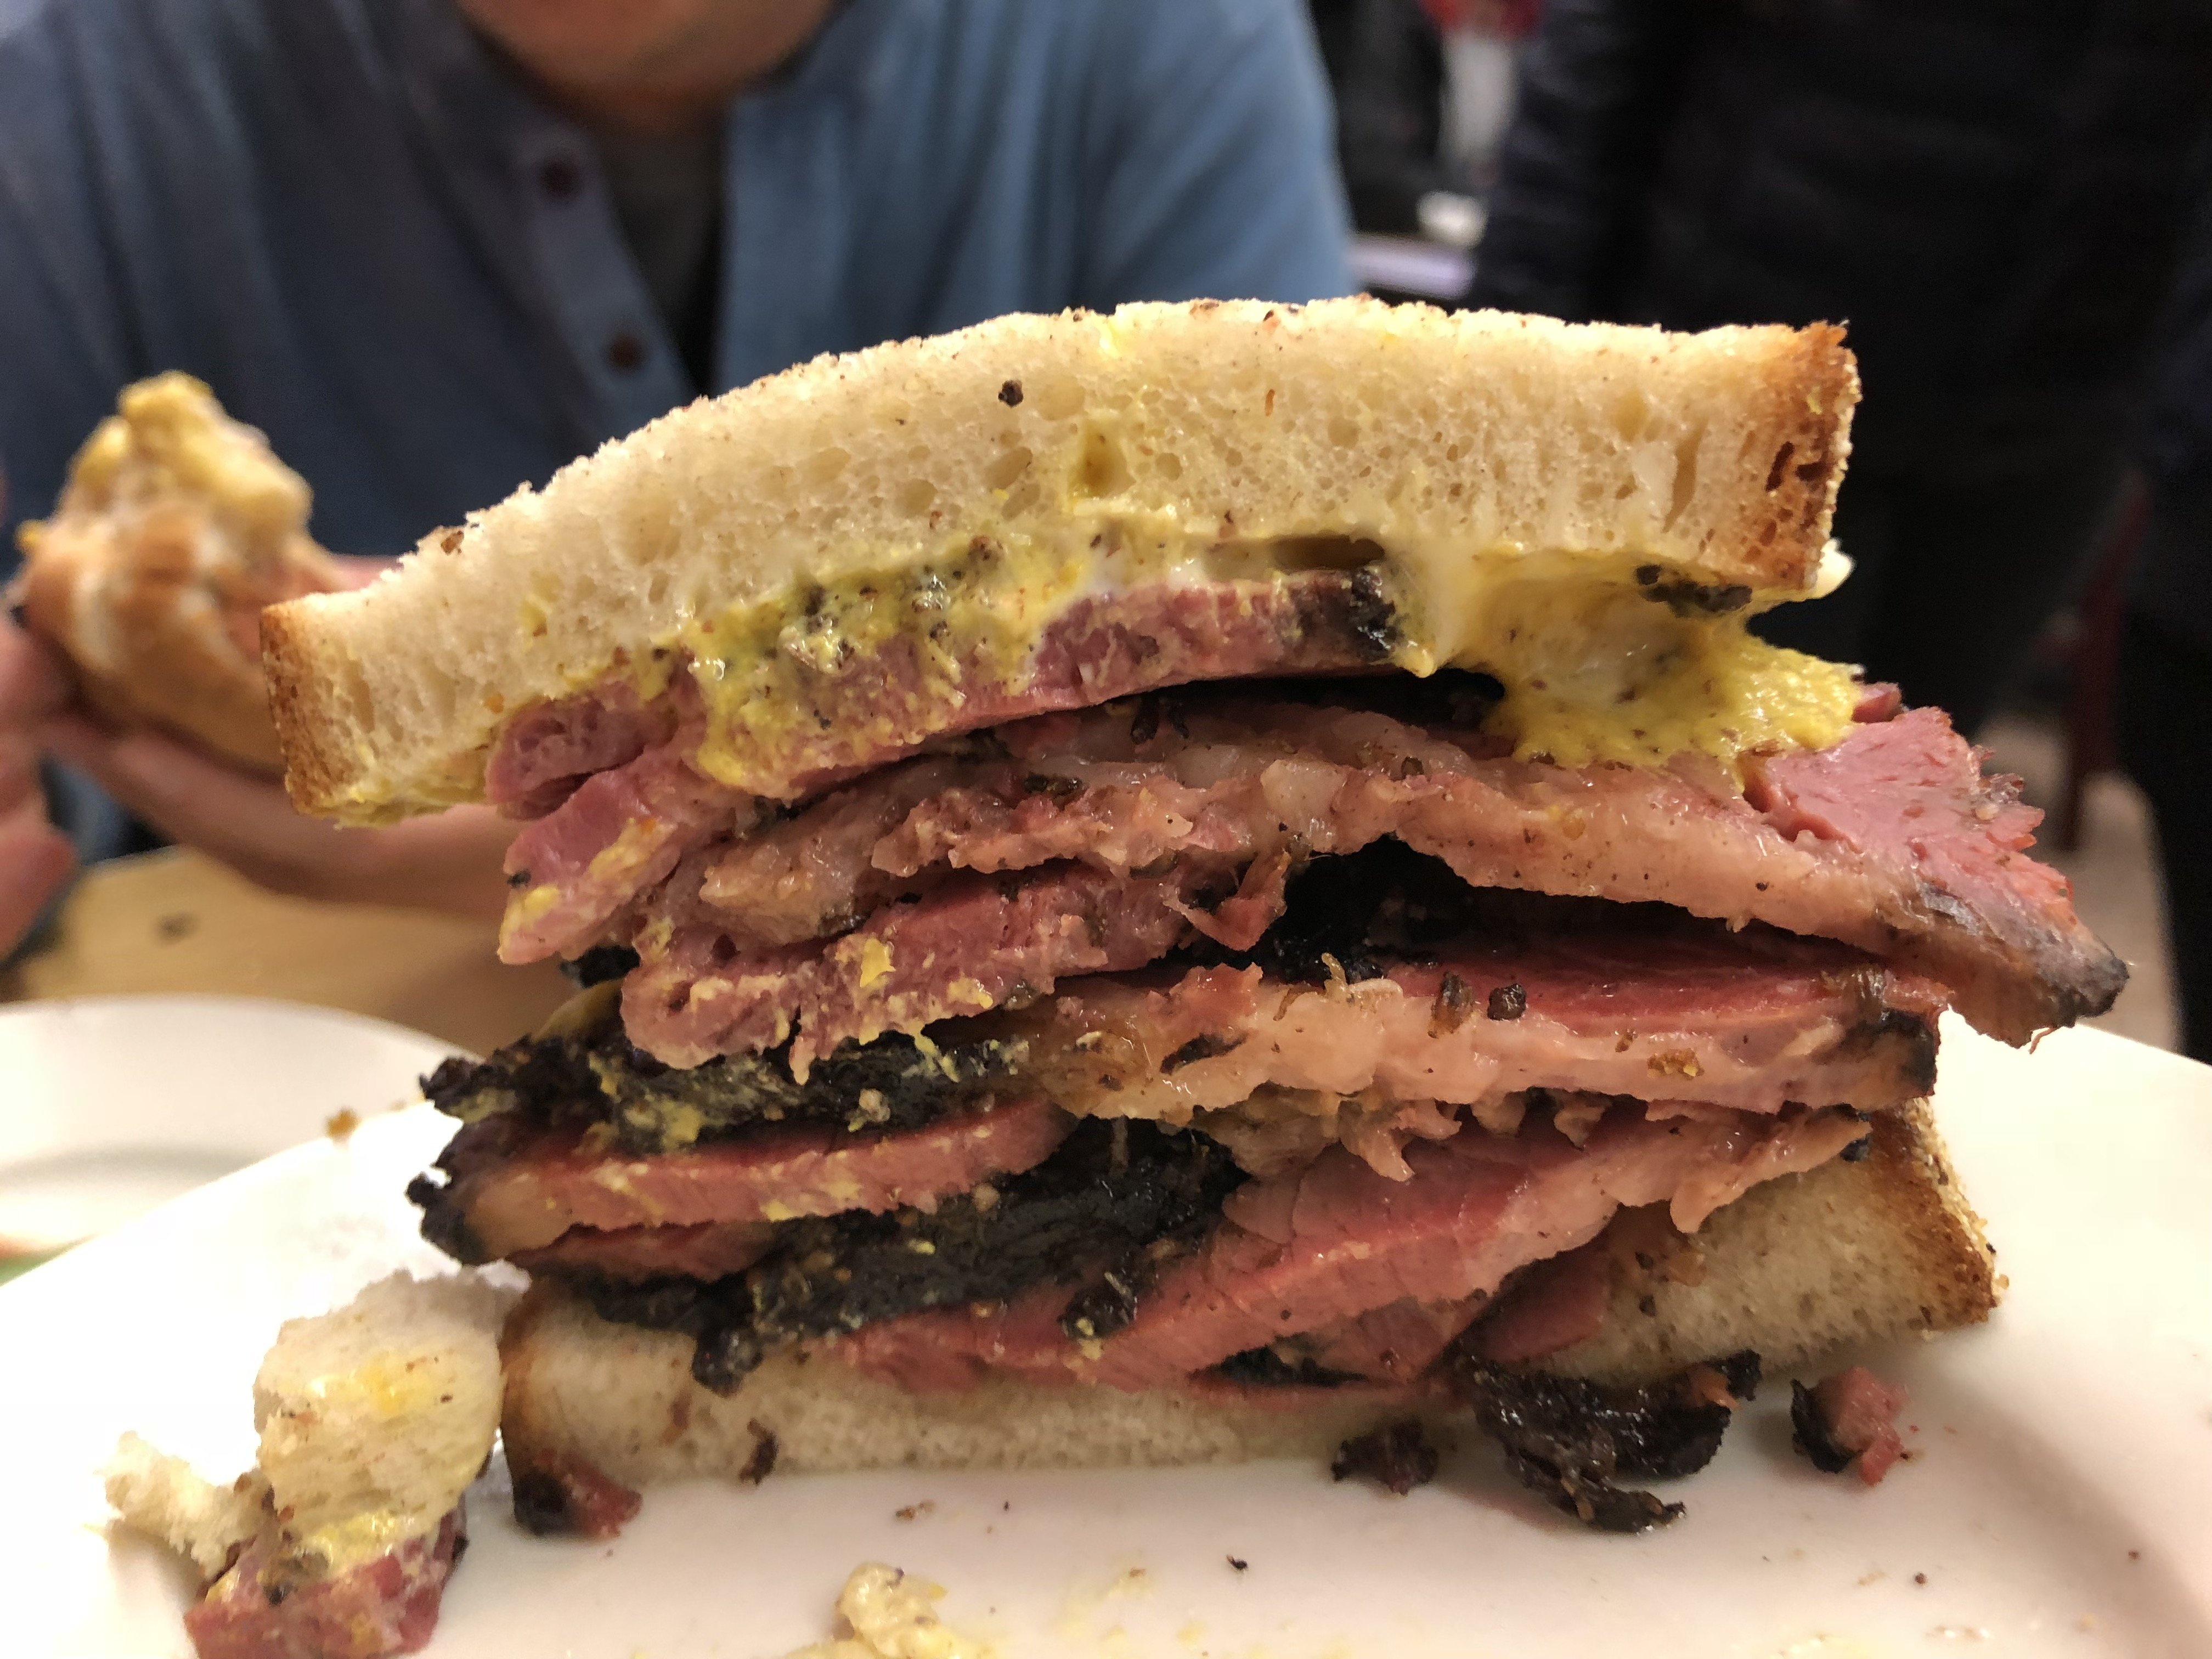 sandwiches in downtown nyc, nyc sandwiches, best NYC sandwiches, Katz deli, best delis nyc, pastrami sandwich